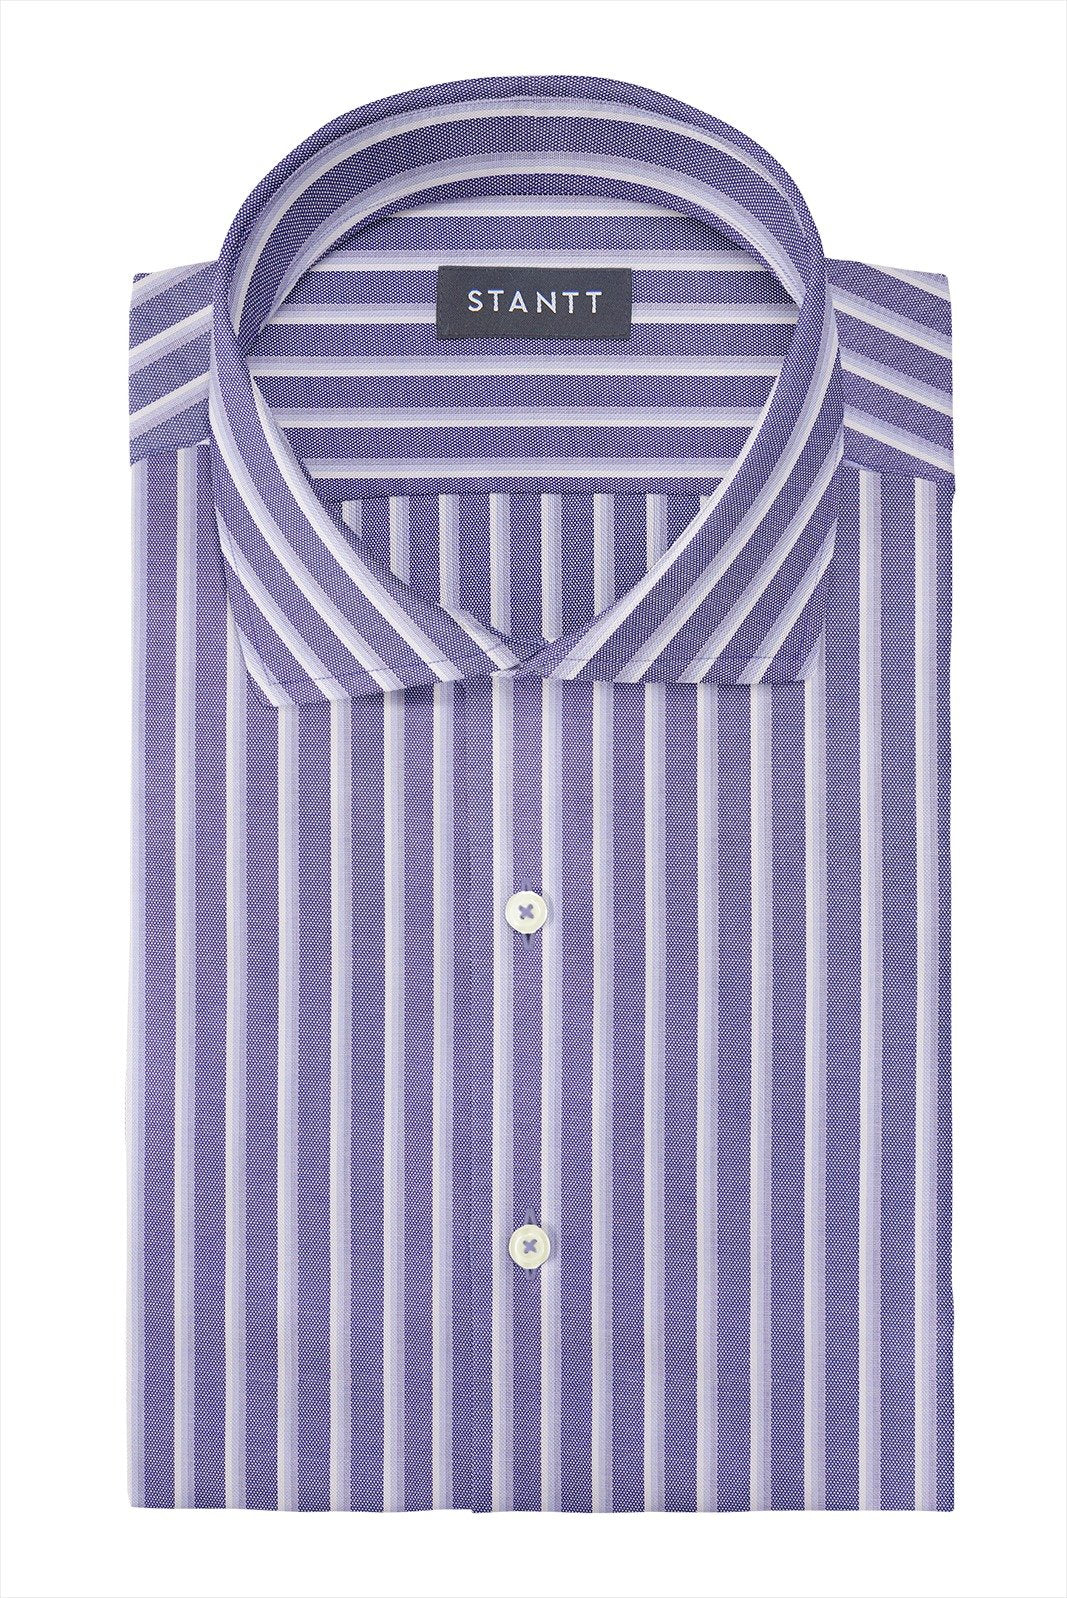 b9ccc6d2741 Shirts | Bold Indigo Oxford Stripe: Cutaway Collar, Barrel Cuff ...